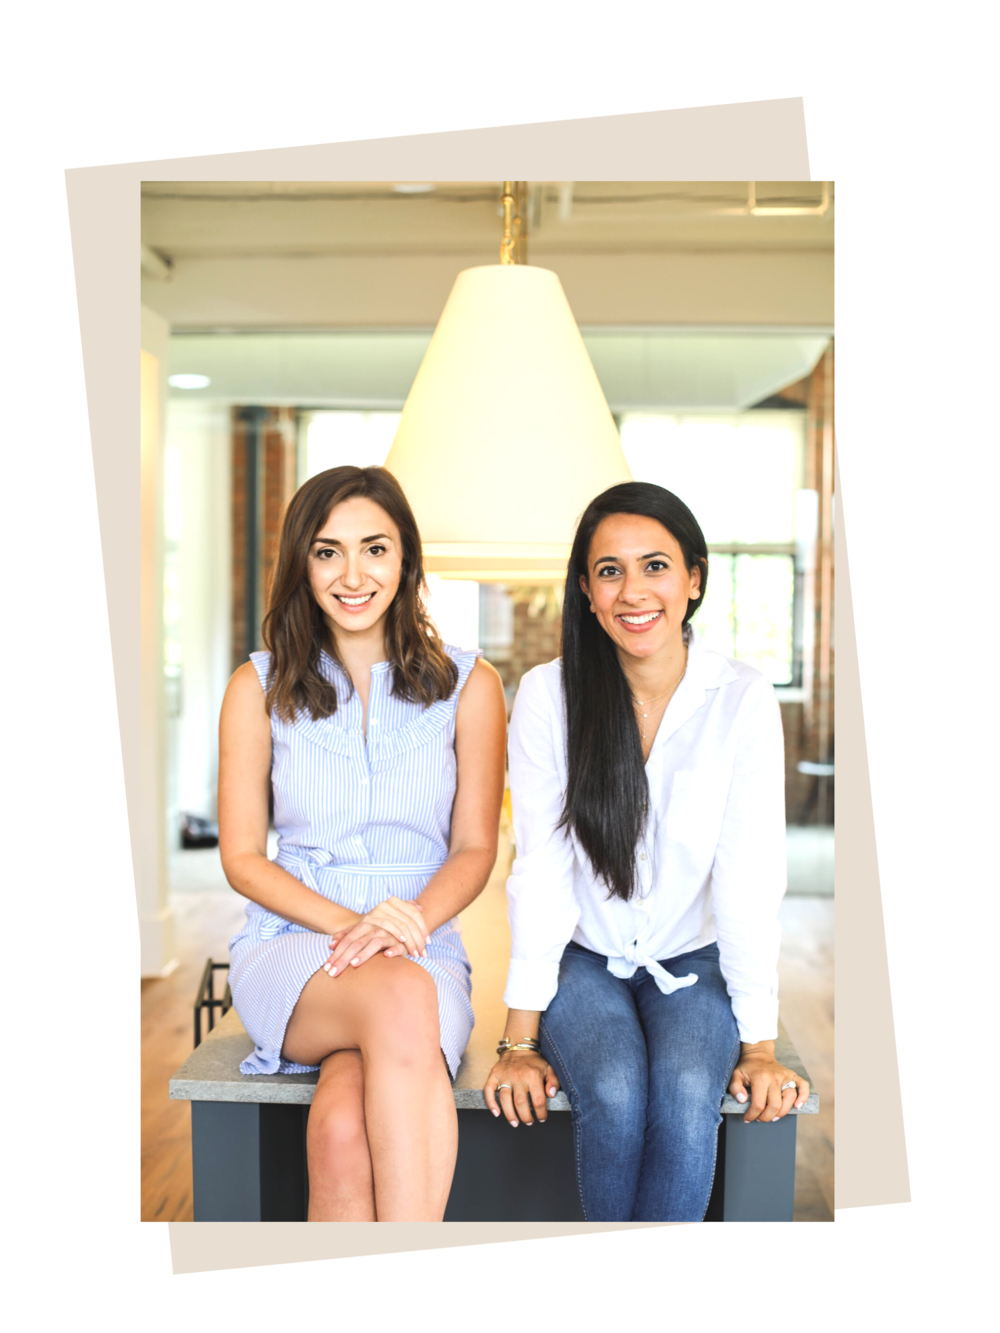 my FIVE TIPS for making your cofounder relationship work - Tallia and I constantly get asked how we are able to work together so well. In this post I'm sharing my advice on how we've made our business relationship work.